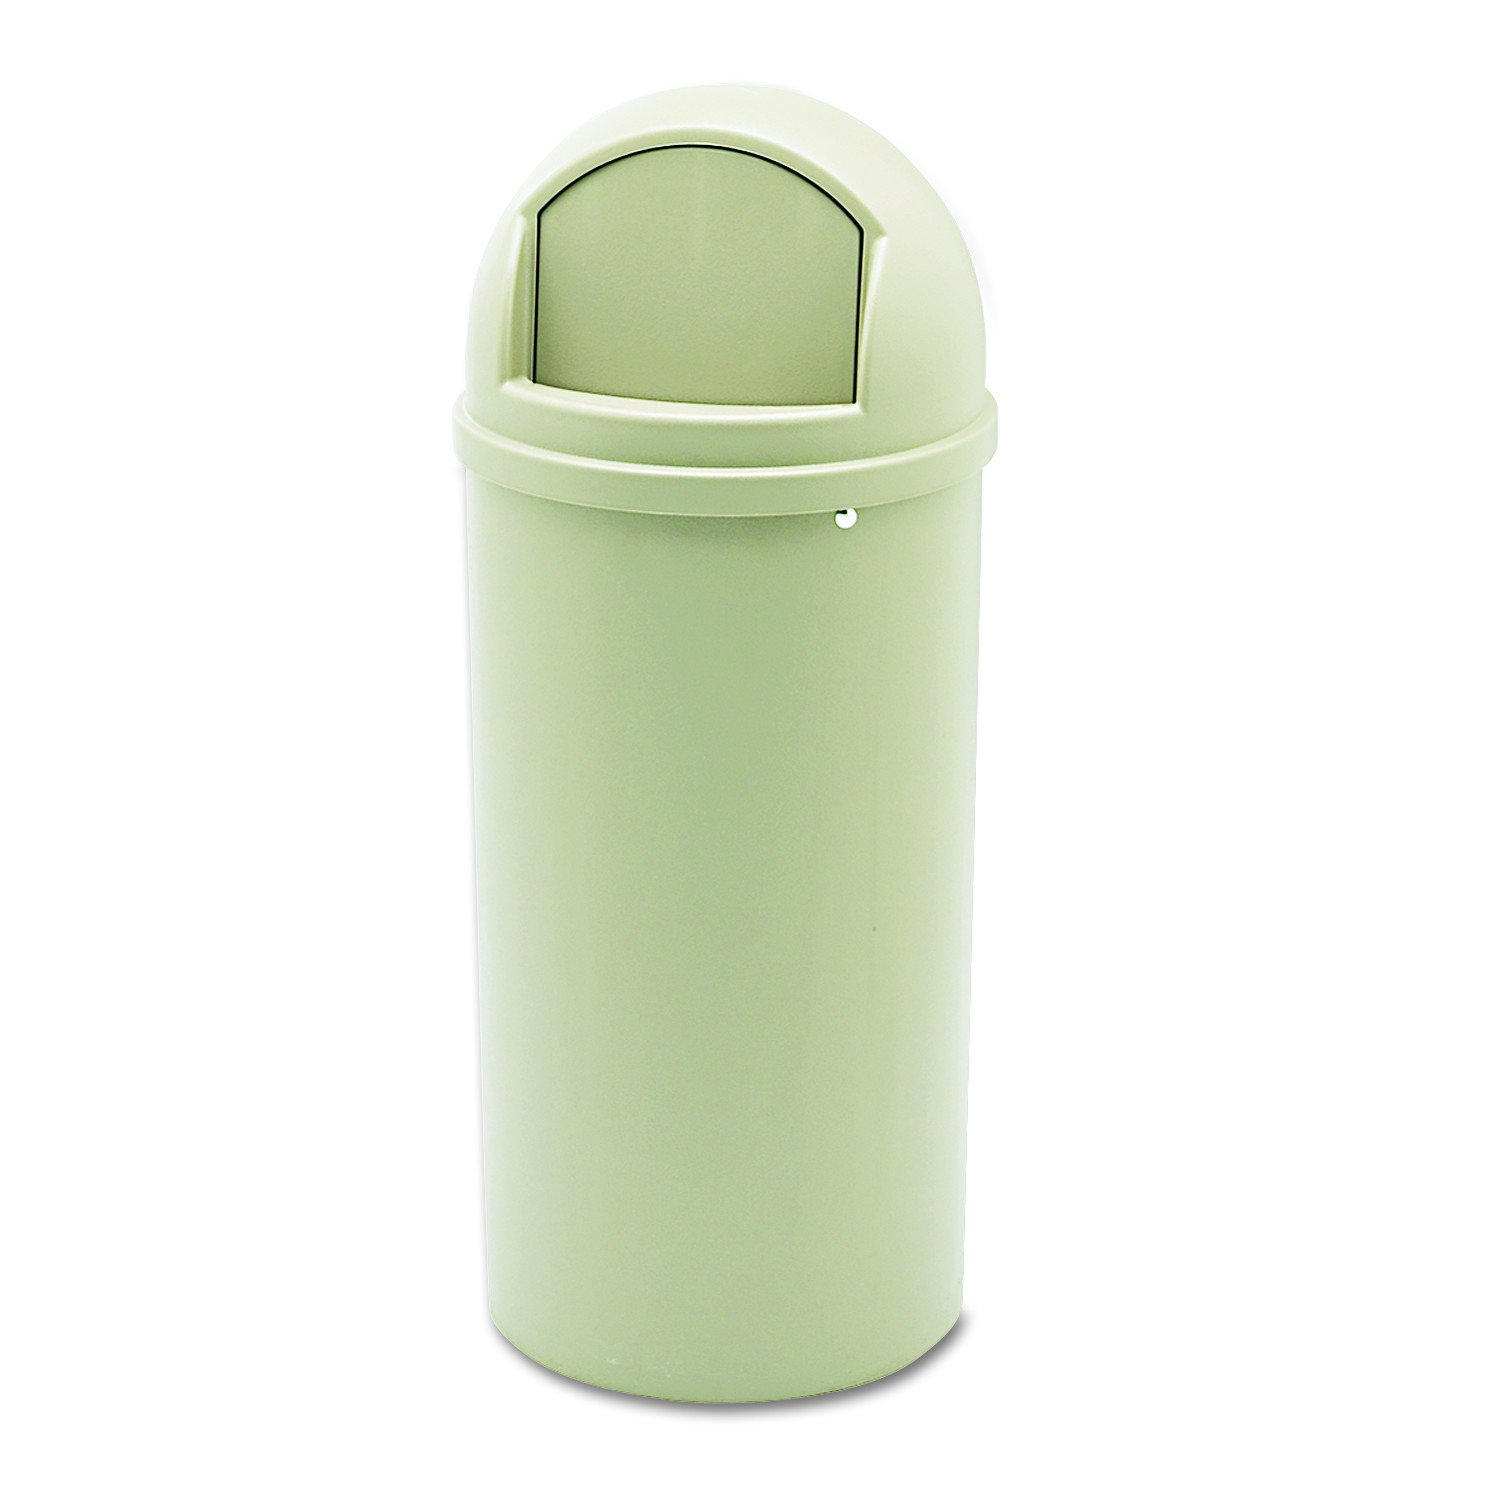 Rubbermaid Commercial Marshal Classic Trash Can, Round, 15-Gallon, Beige, FG816088BEIG